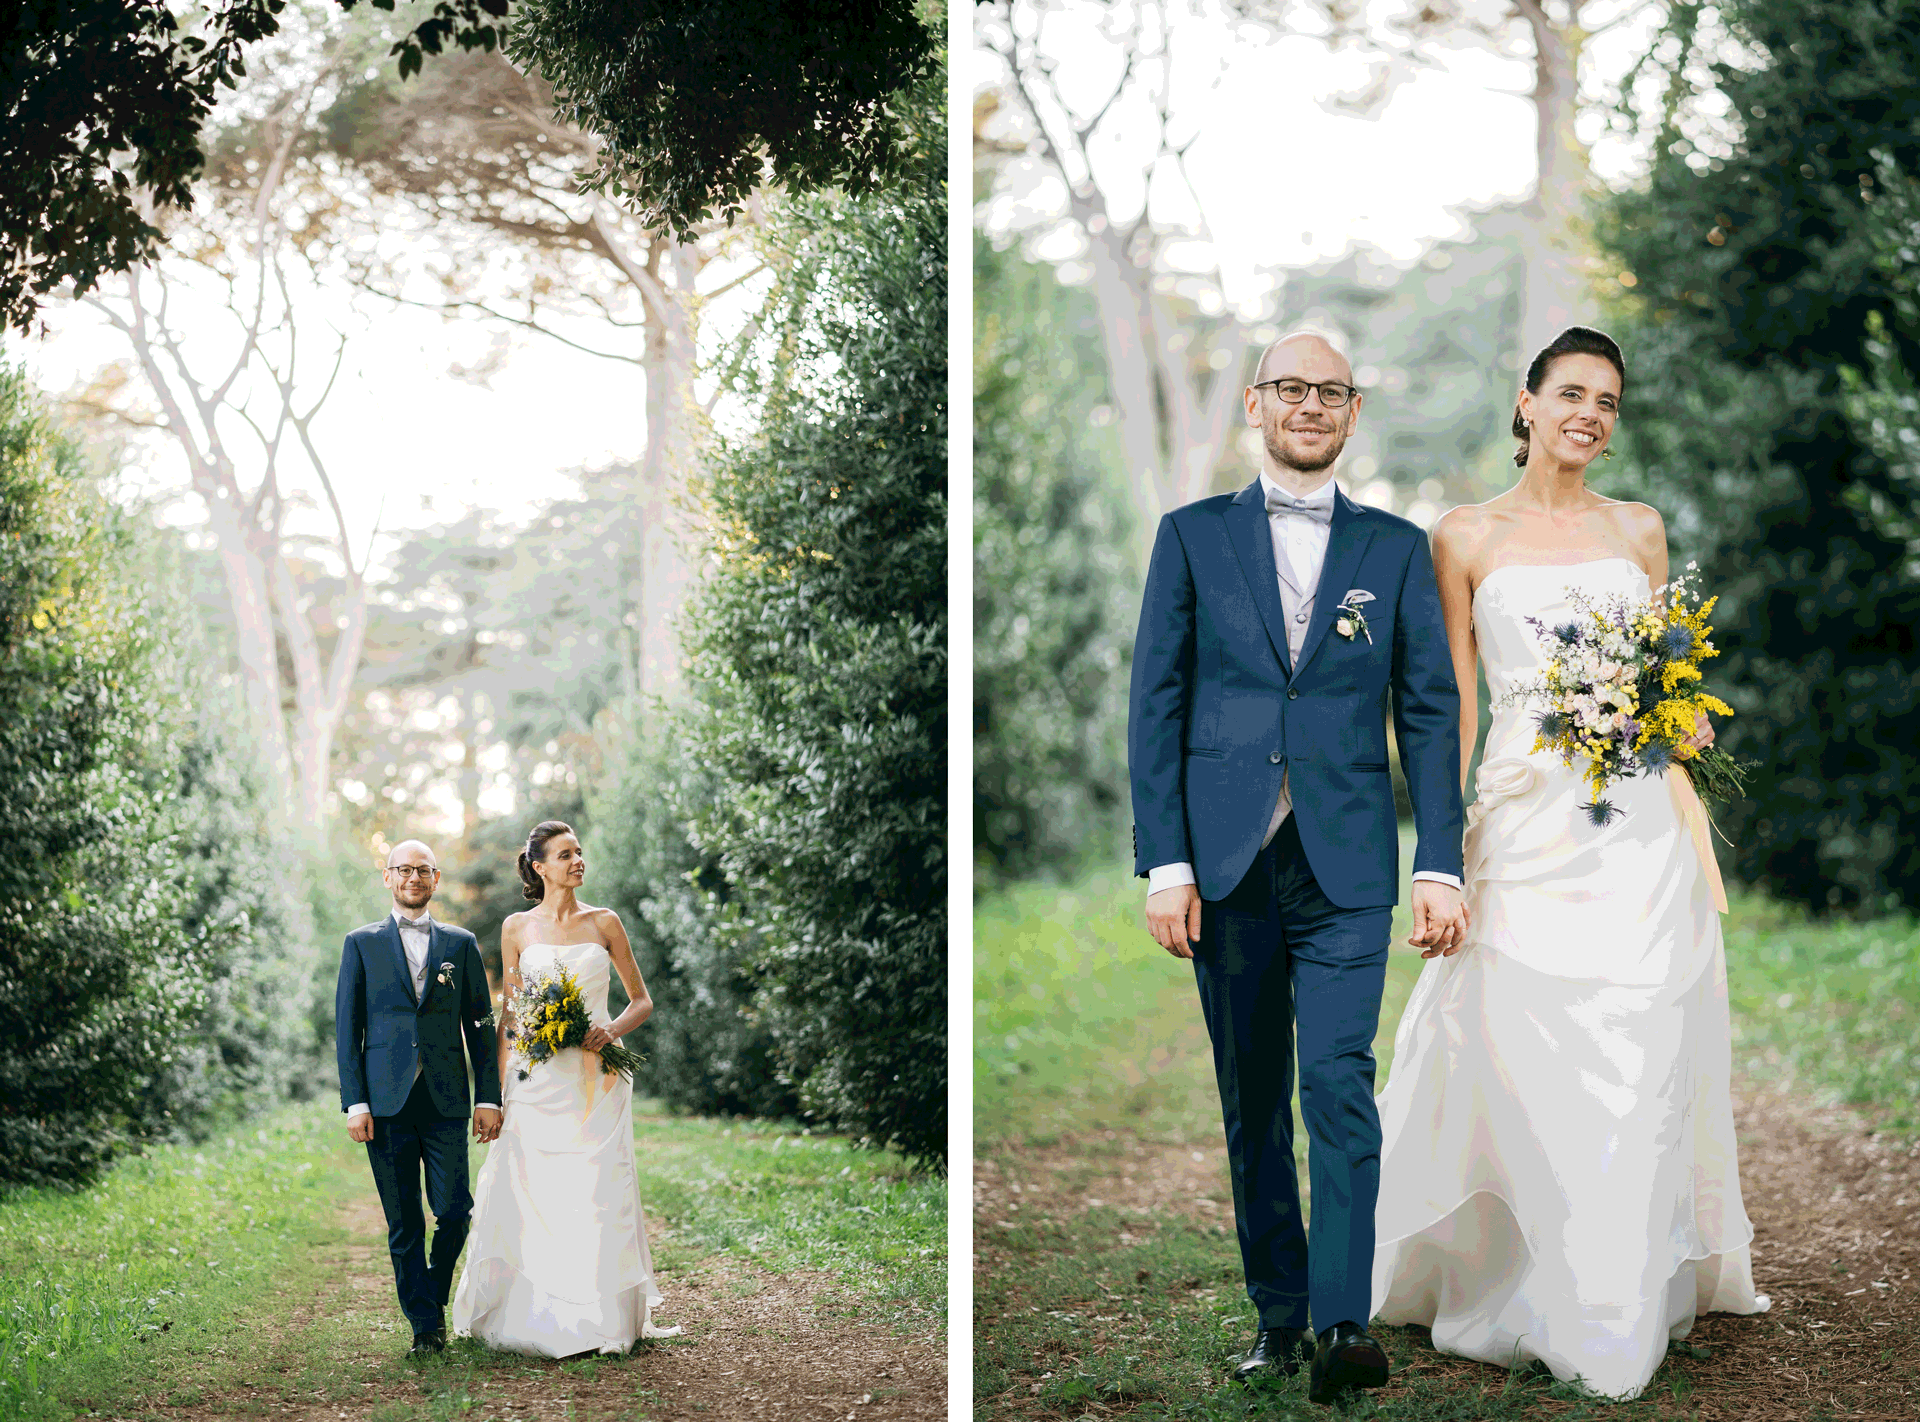 Wedding-Photographer-in-Italy-Natural-Wedding-Photography-Portraits